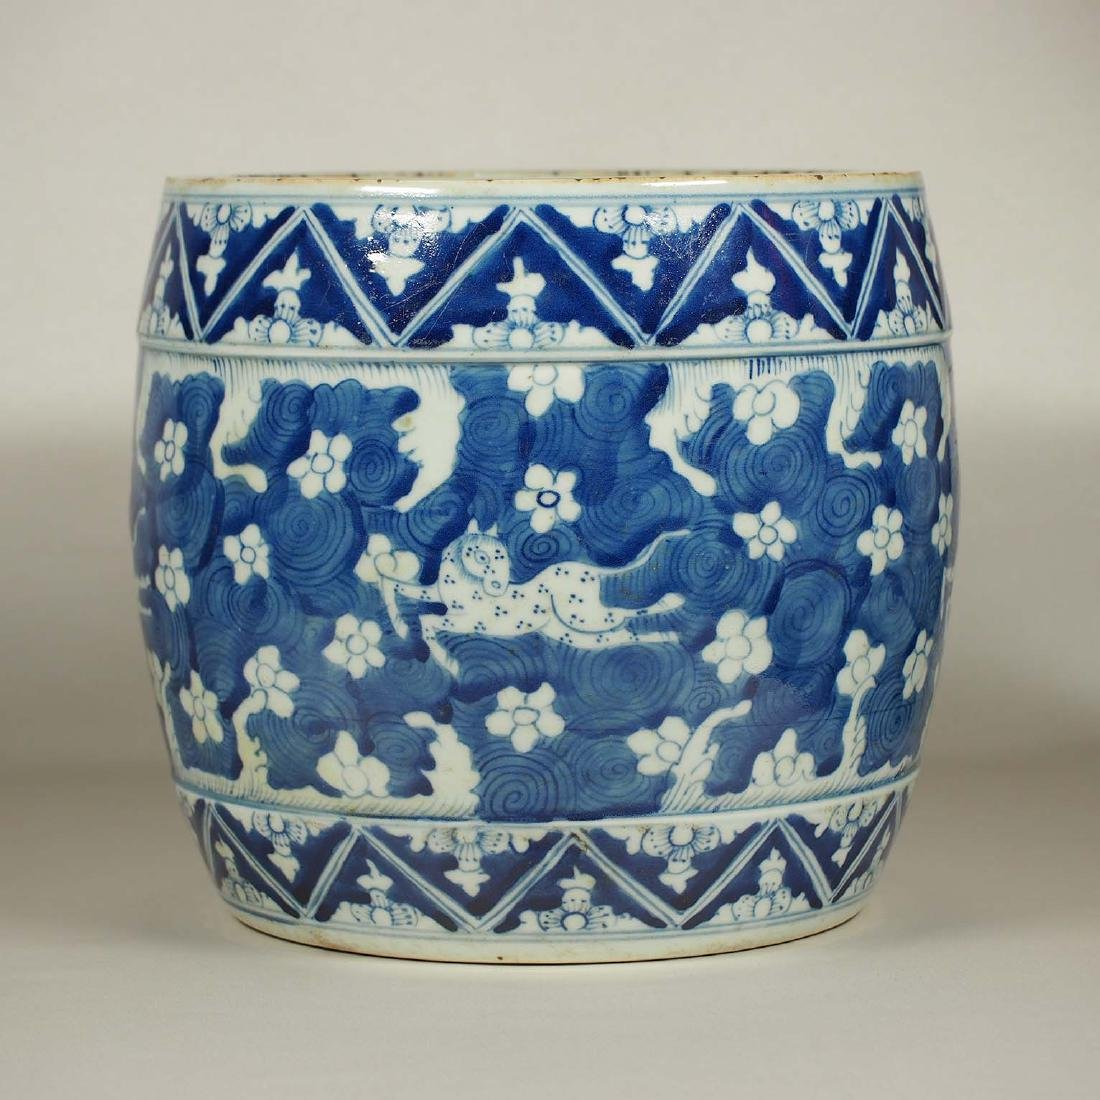 Pot with Horses Among Flowers, late Ming Transitional